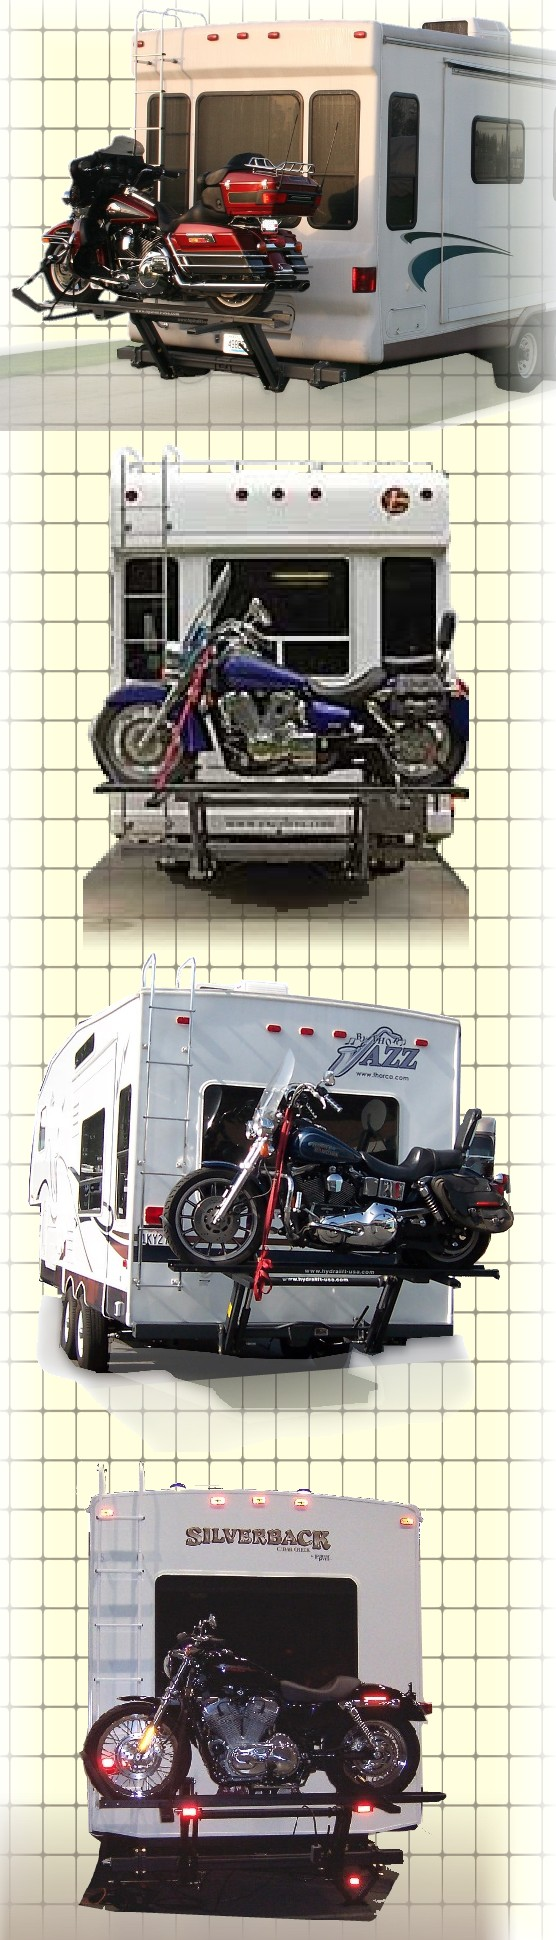 motorcycle 5th wheel